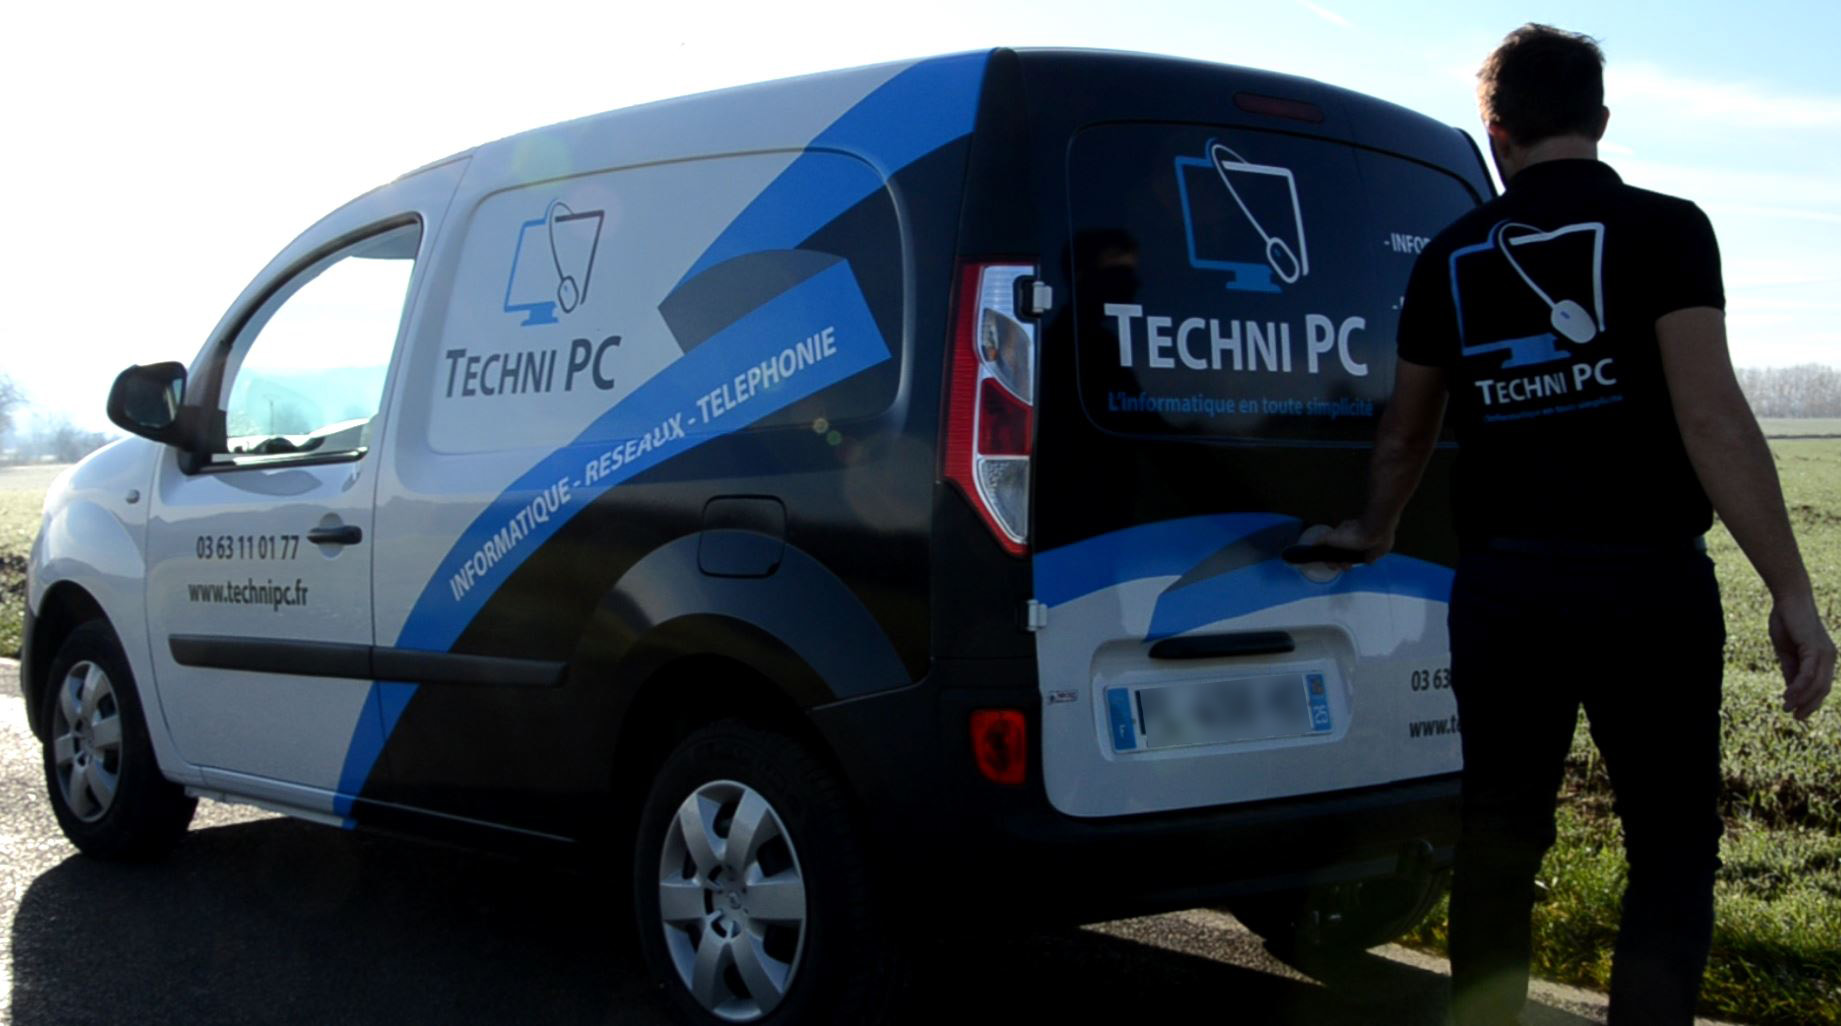 Techni PC